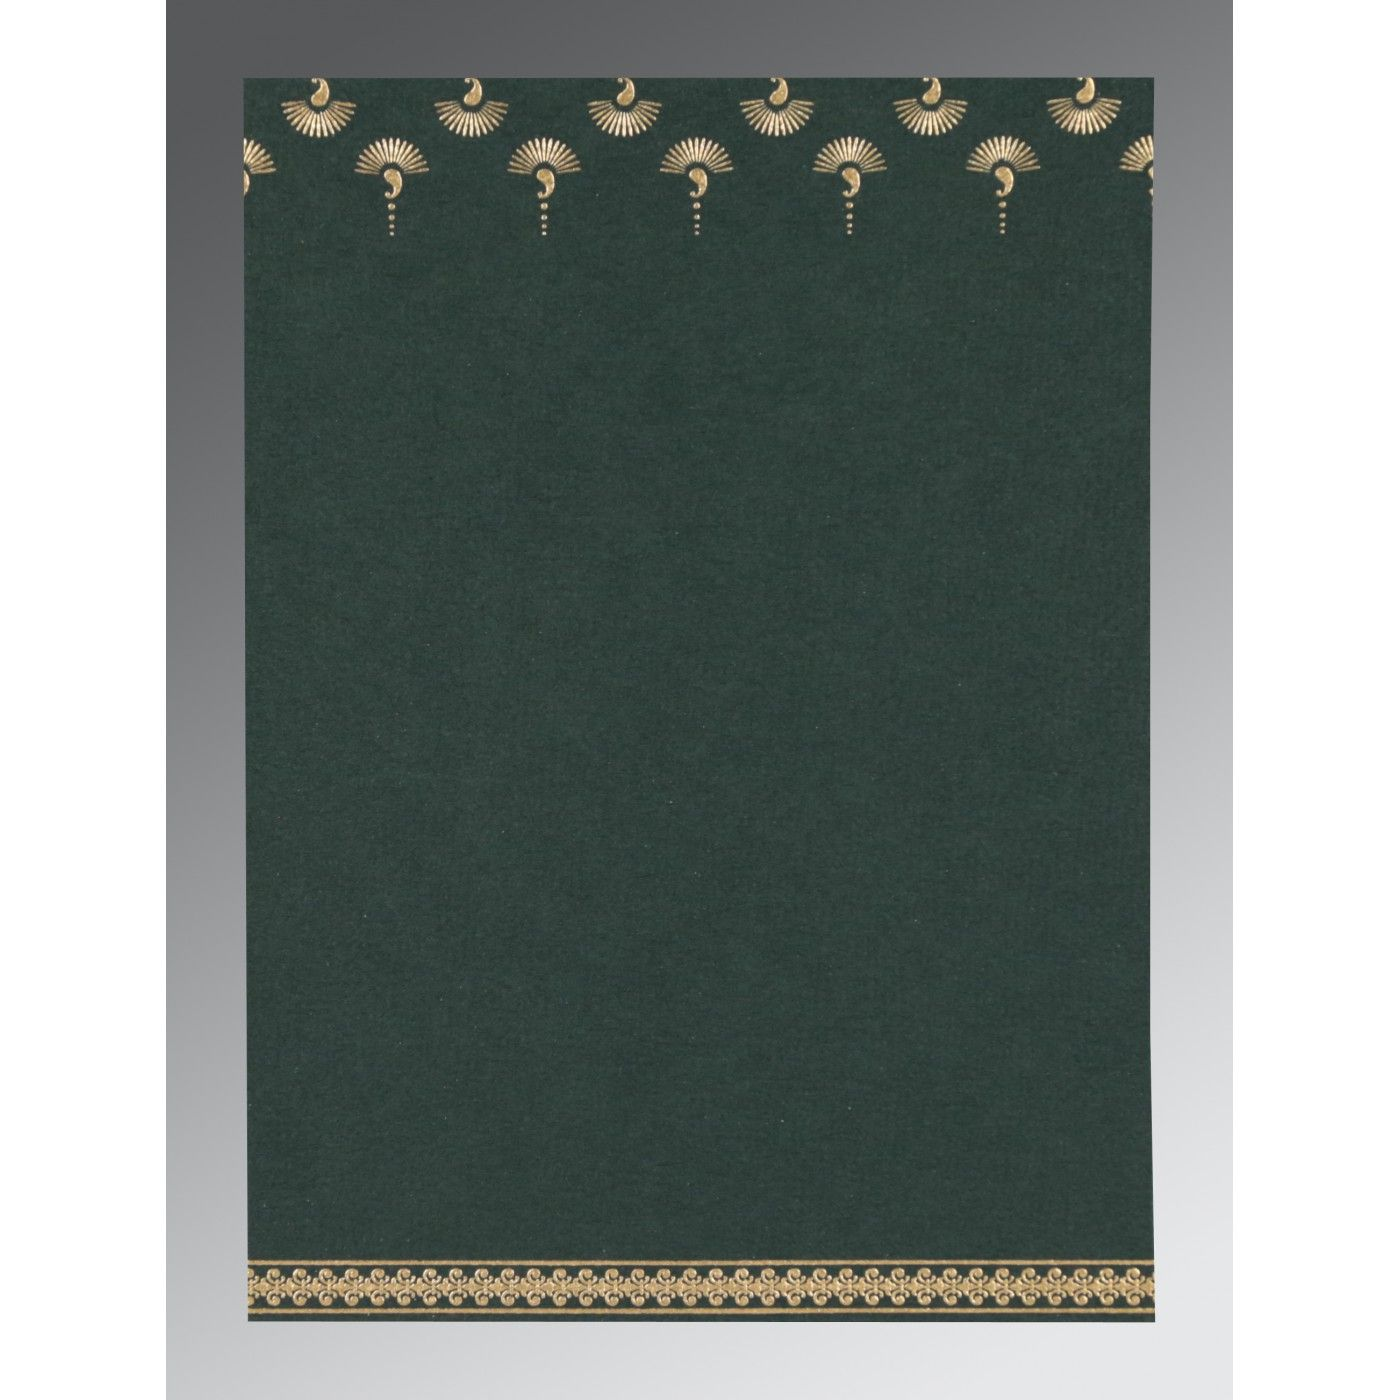 DARK GREEN MATTE SCREEN PRINTED WEDDING INVITATION : CD-8247N - IndianWeddingCards